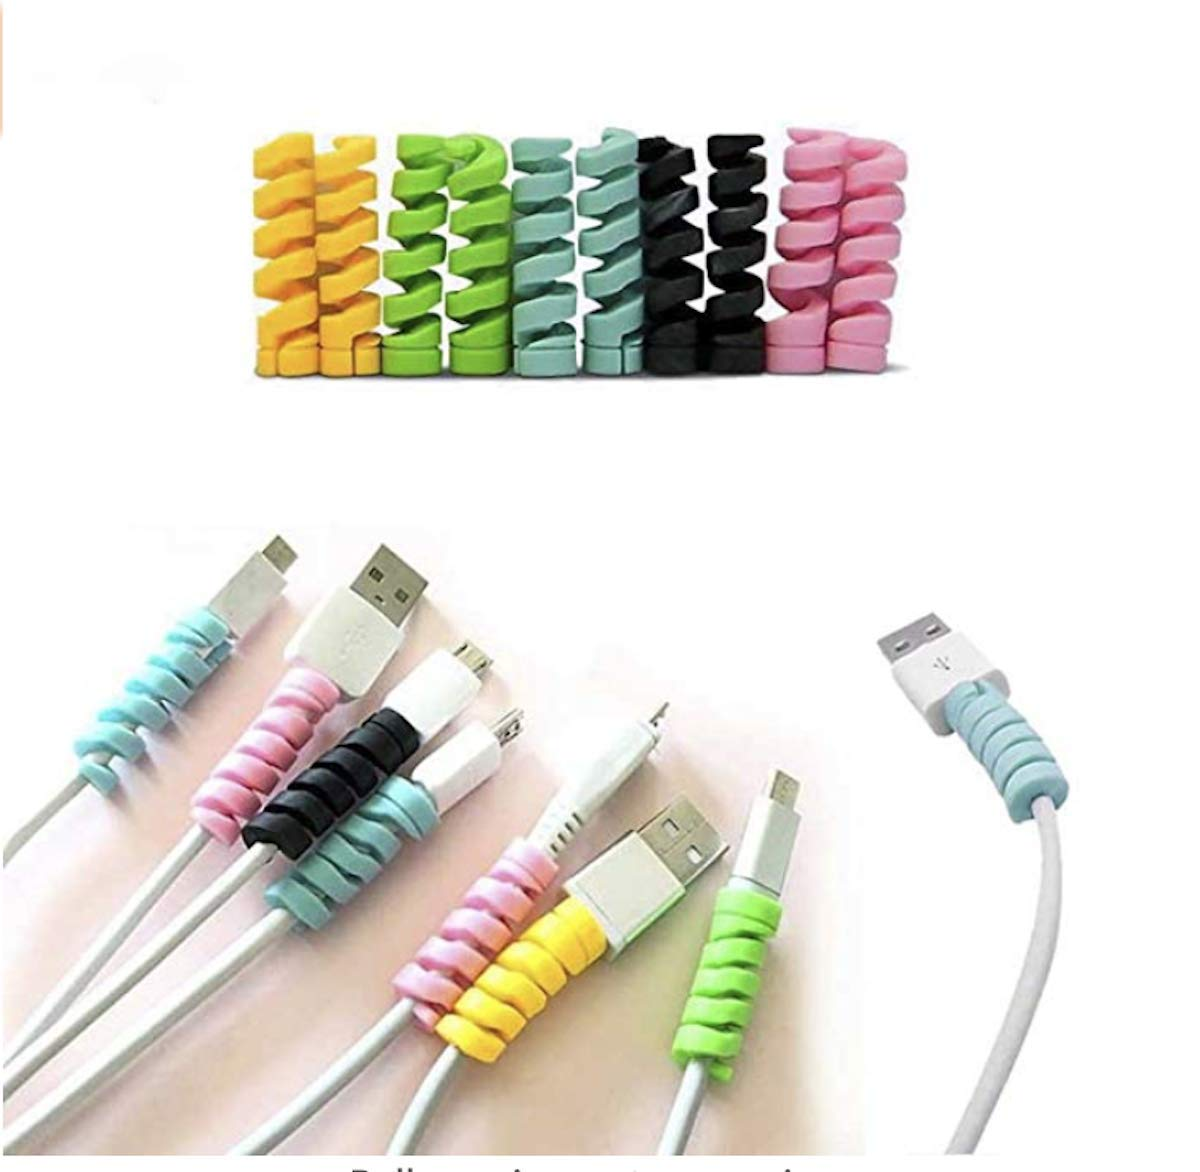 5Pcs Spiral Tube Charging Cable Protector Wire Cord Organizer Protetor for Apple iPhone ipad iwatch Charging Cable